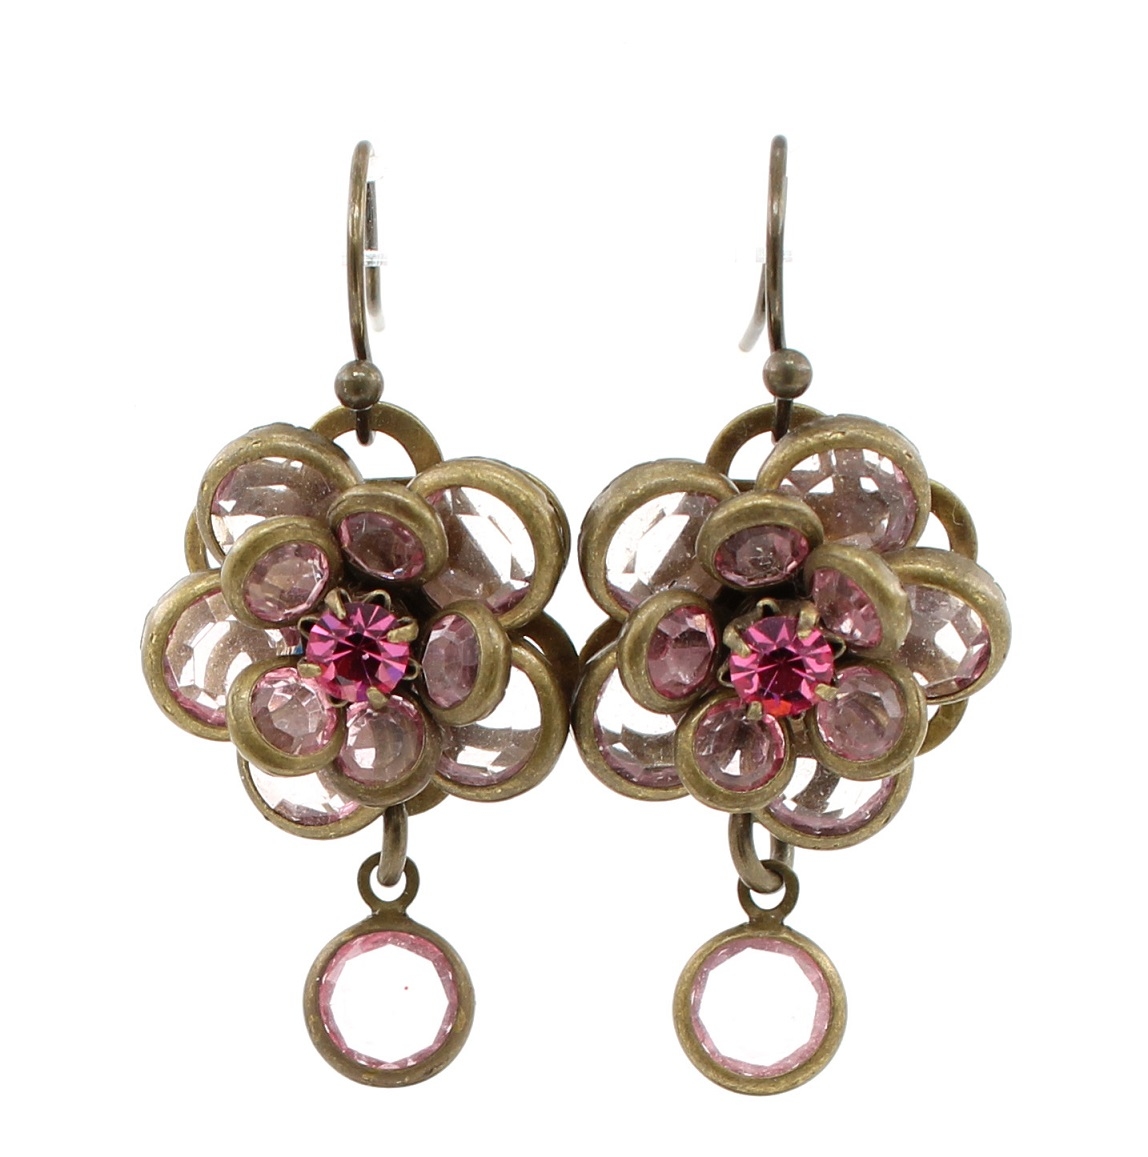 Lisbeth Dahl - Faceted Discs Flower Earrings - Vintage Gold/Pink BNWT